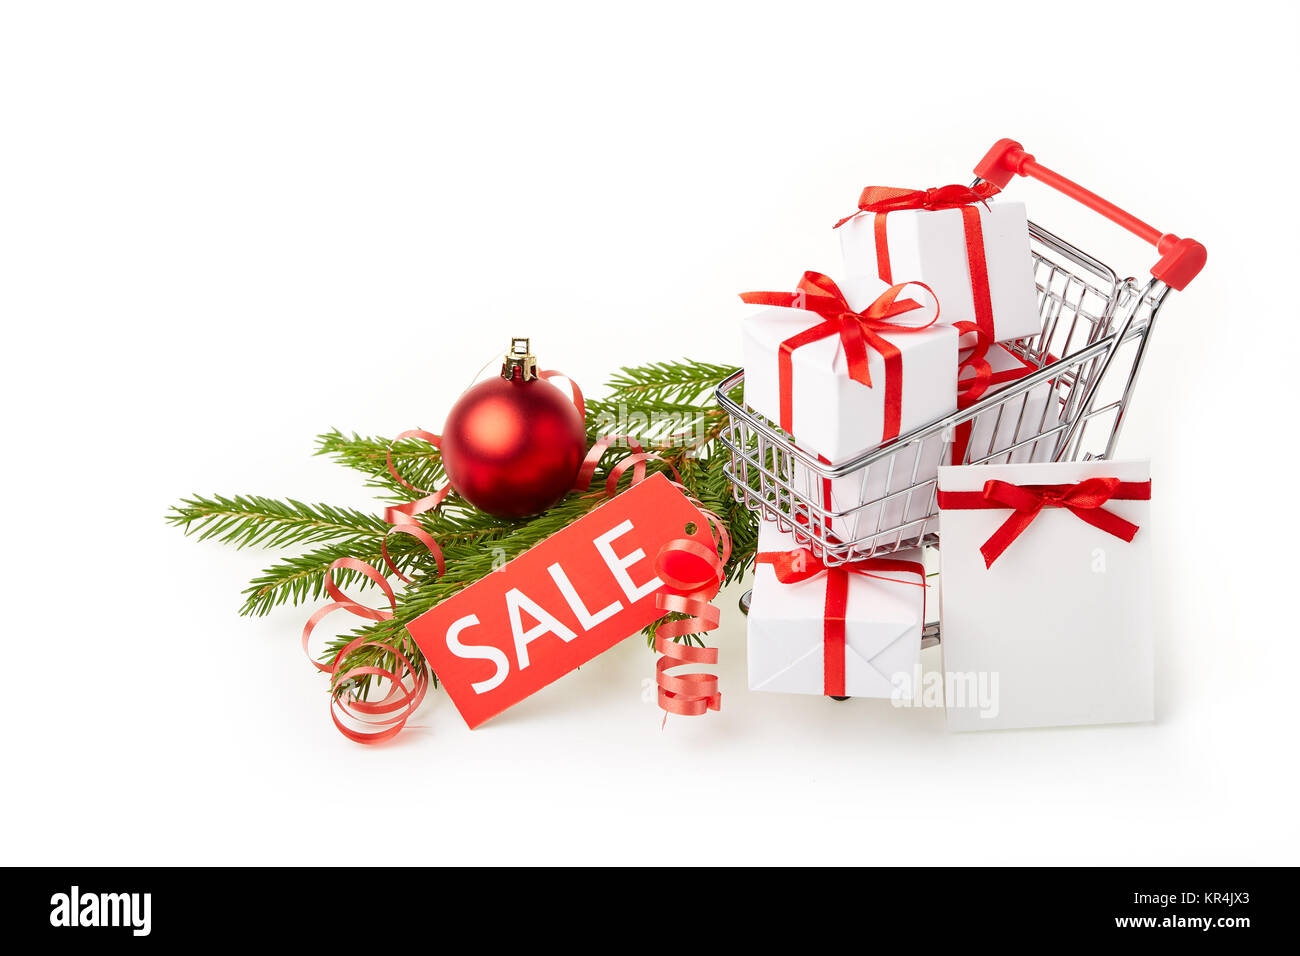 Christmas and New Year shopping. Stock Photo